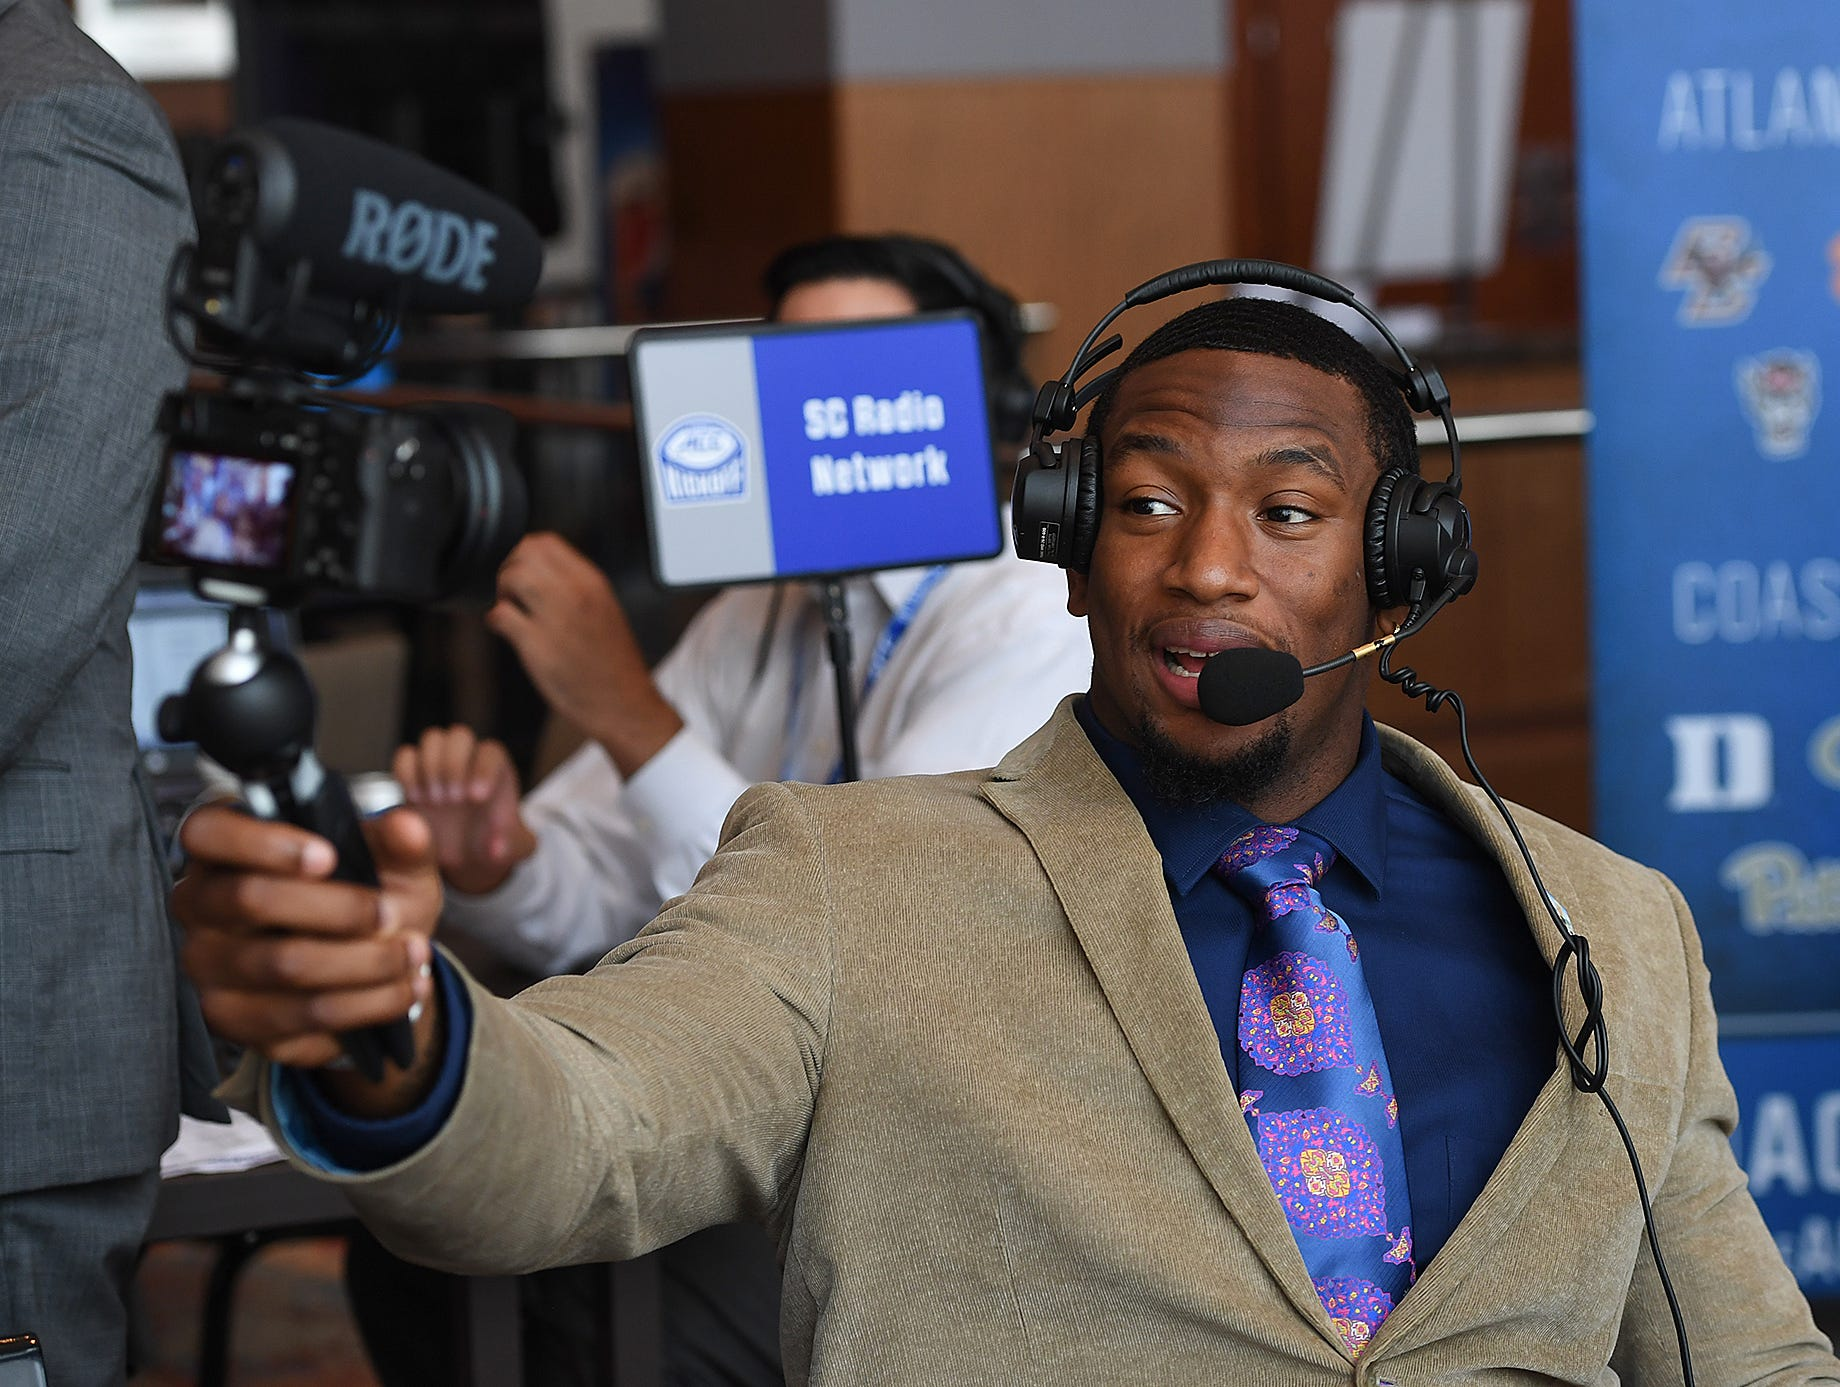 Clemson defensive lineman Clelin Ferrell videos himself on radio row at the ACC Football Kickoff in Charlotte, N.C., Thursday, July 19, 2018.